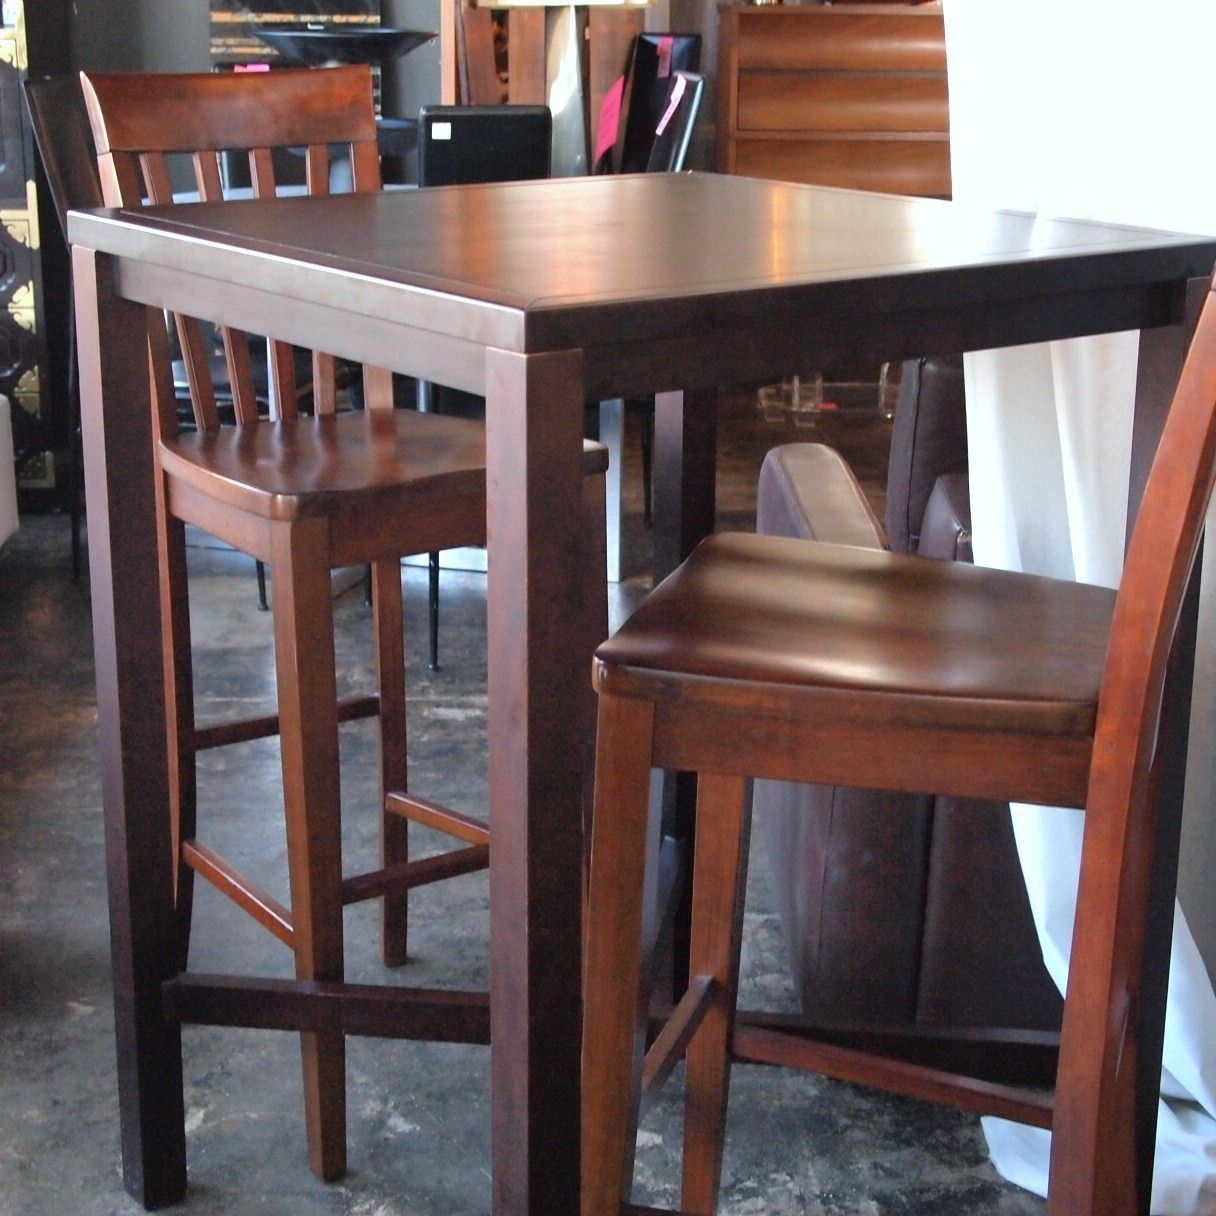 High Top Table And Chairs 10759 High Top Bar Style Wood Table With 2 Chairs The